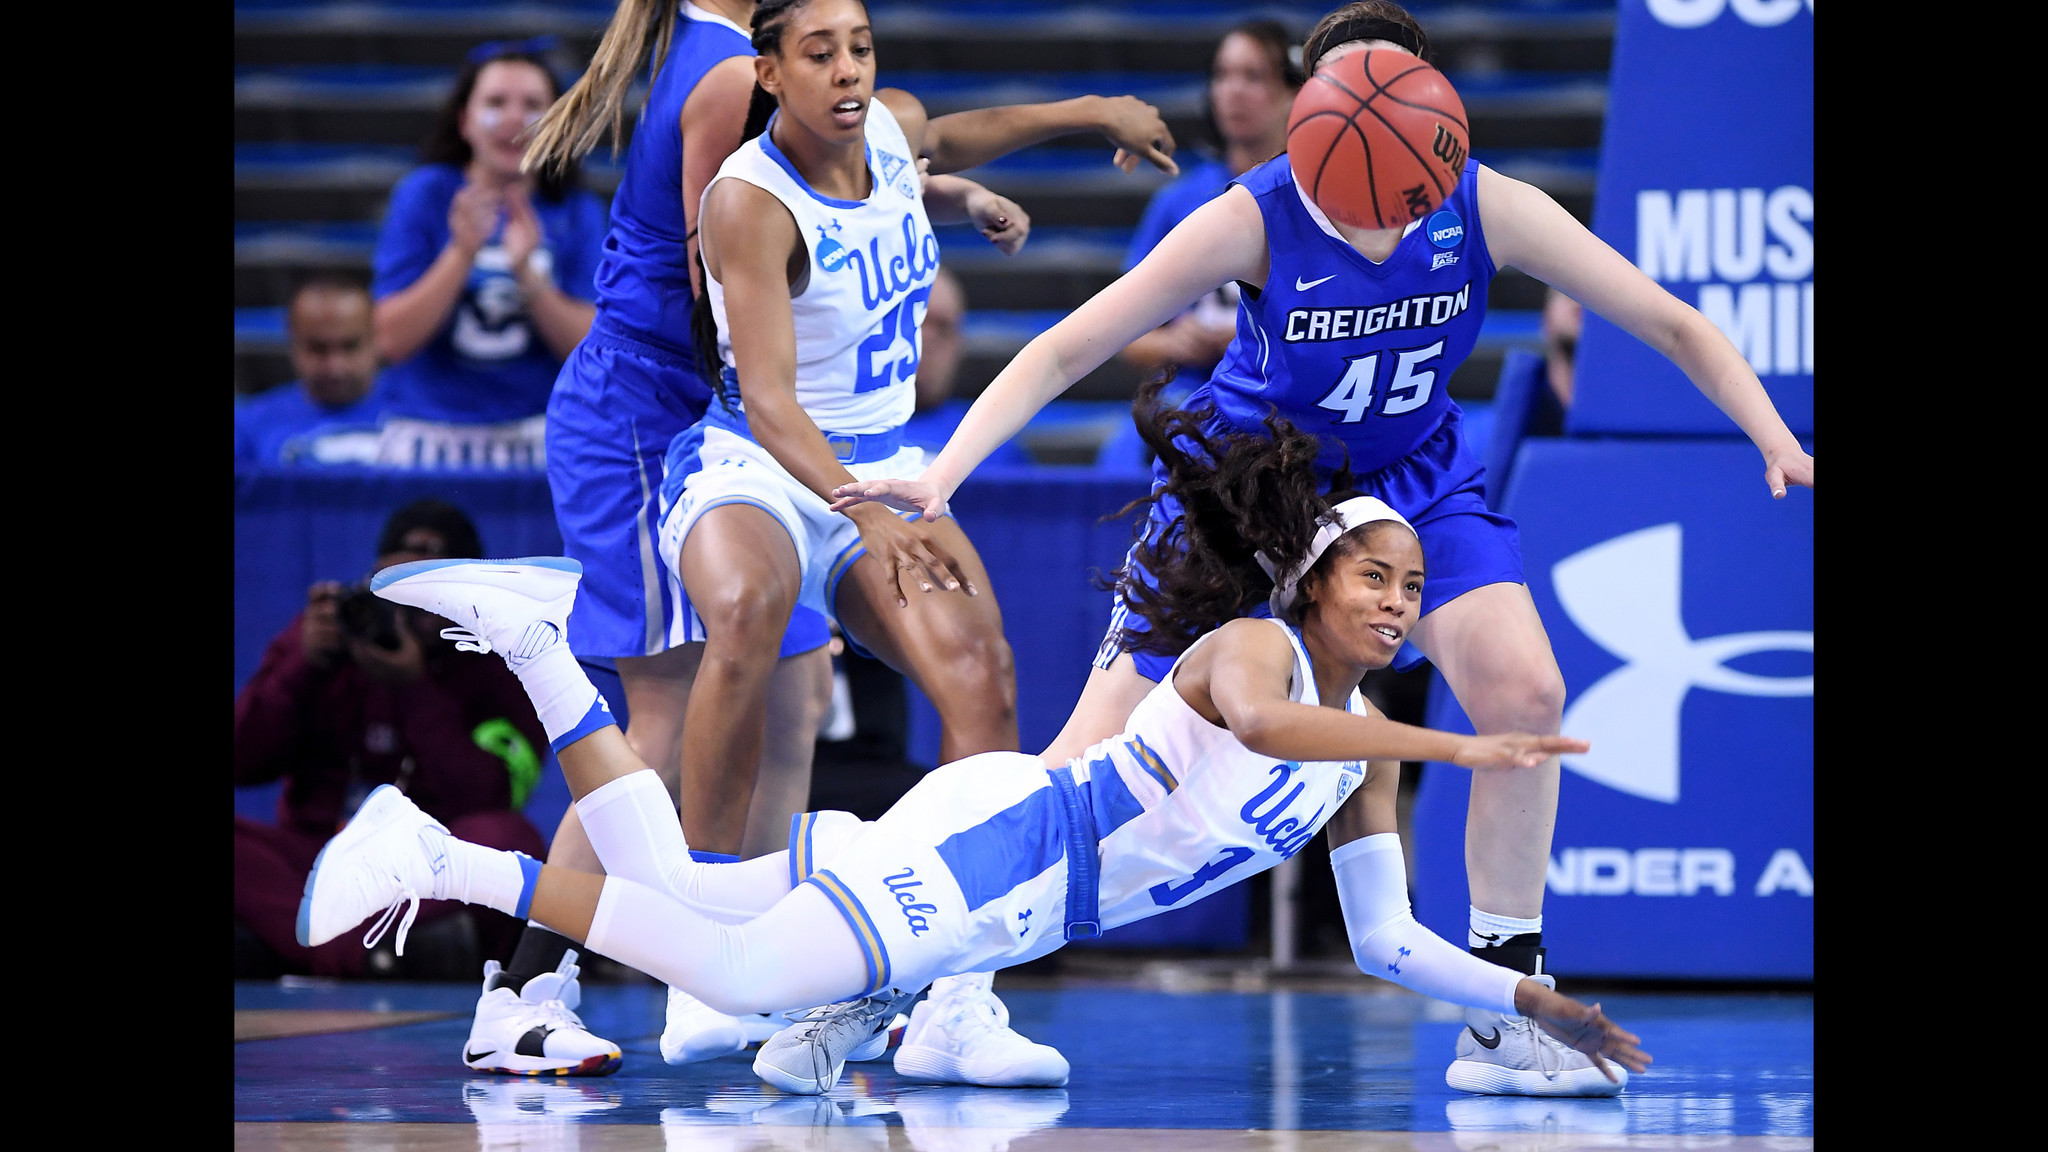 LOS ANGELES, CALIFORNIA MARCH 19, 2018-UCLA's Jordin Canada gets a pass off despite tripping against